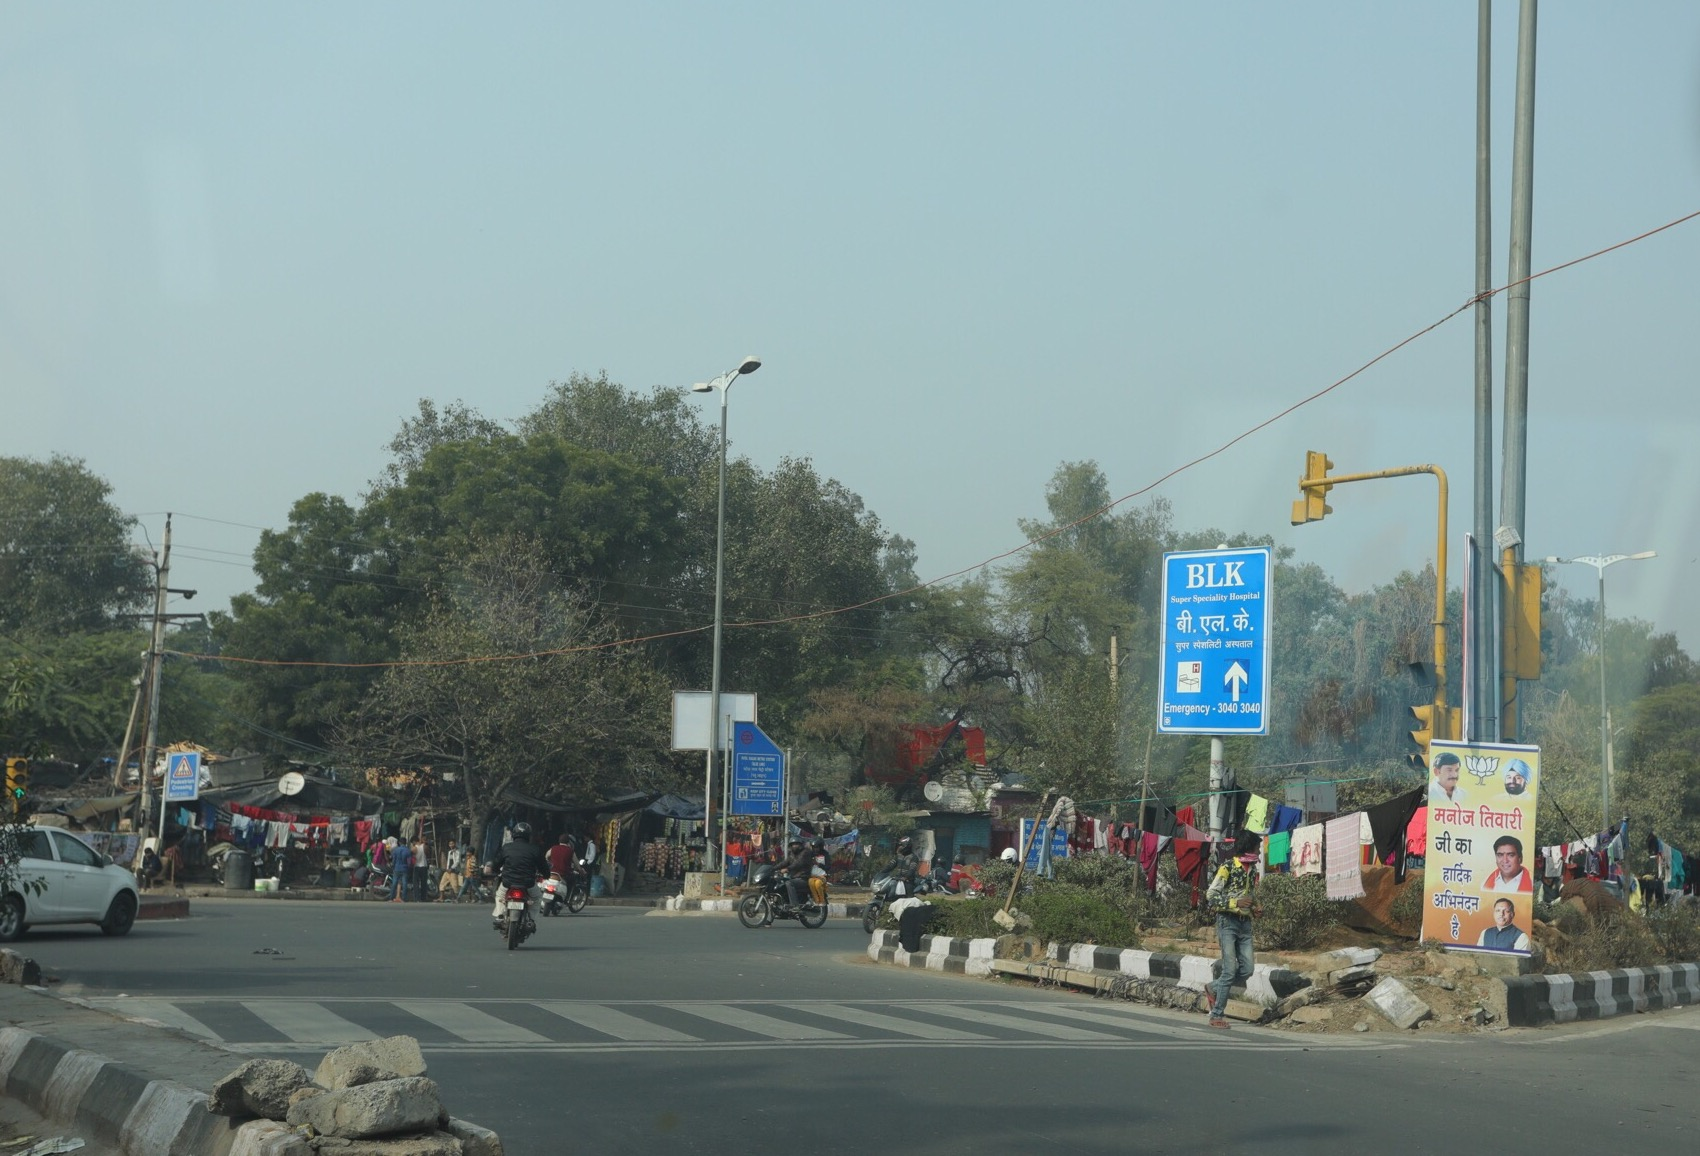 Slum on a busy roundabout